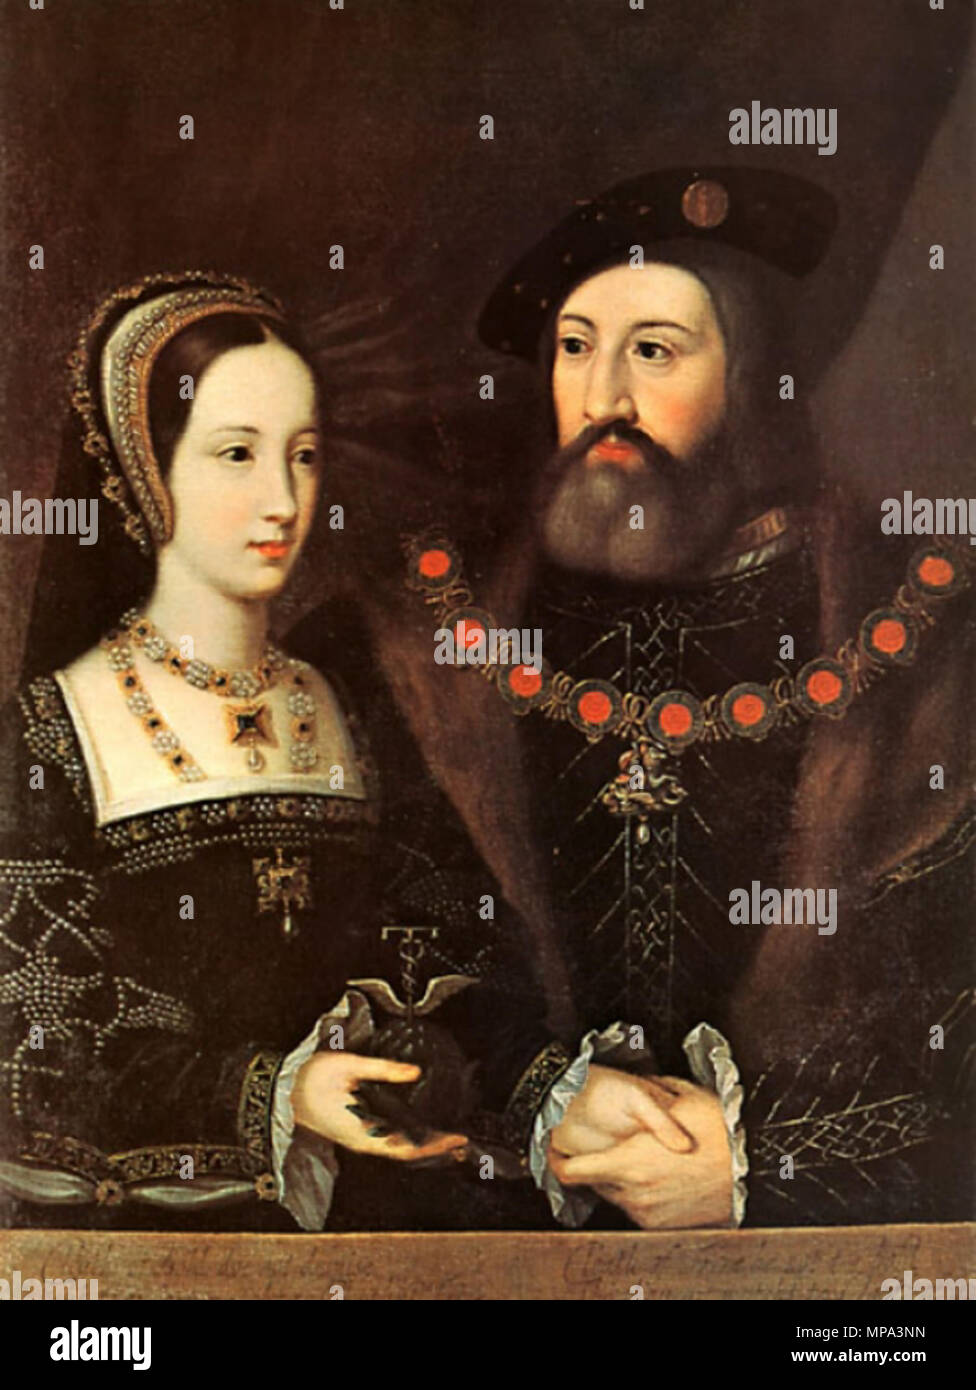 English: Portrait of Mary Tudor and Charles Brandon .  English: This is the original painting of Mary Tudor and Charles Brandon's wedding portrait by Jan Mabuse in the collection of the Earl of Yarborough; Brocklesby Park, Lincolnshire. There exist several copies. Deutsch: Original des Hochzeitsporträts von Mary Tudor und Charles Brandon von Jan Mabuse in der Sammlung des Earl of Yarborough; Brocklesby Park, Lincolnshire. Mehrere Kopien existieren. . circa 1516.   867 Mary Tudor and Charles Brandon original - Stock Image